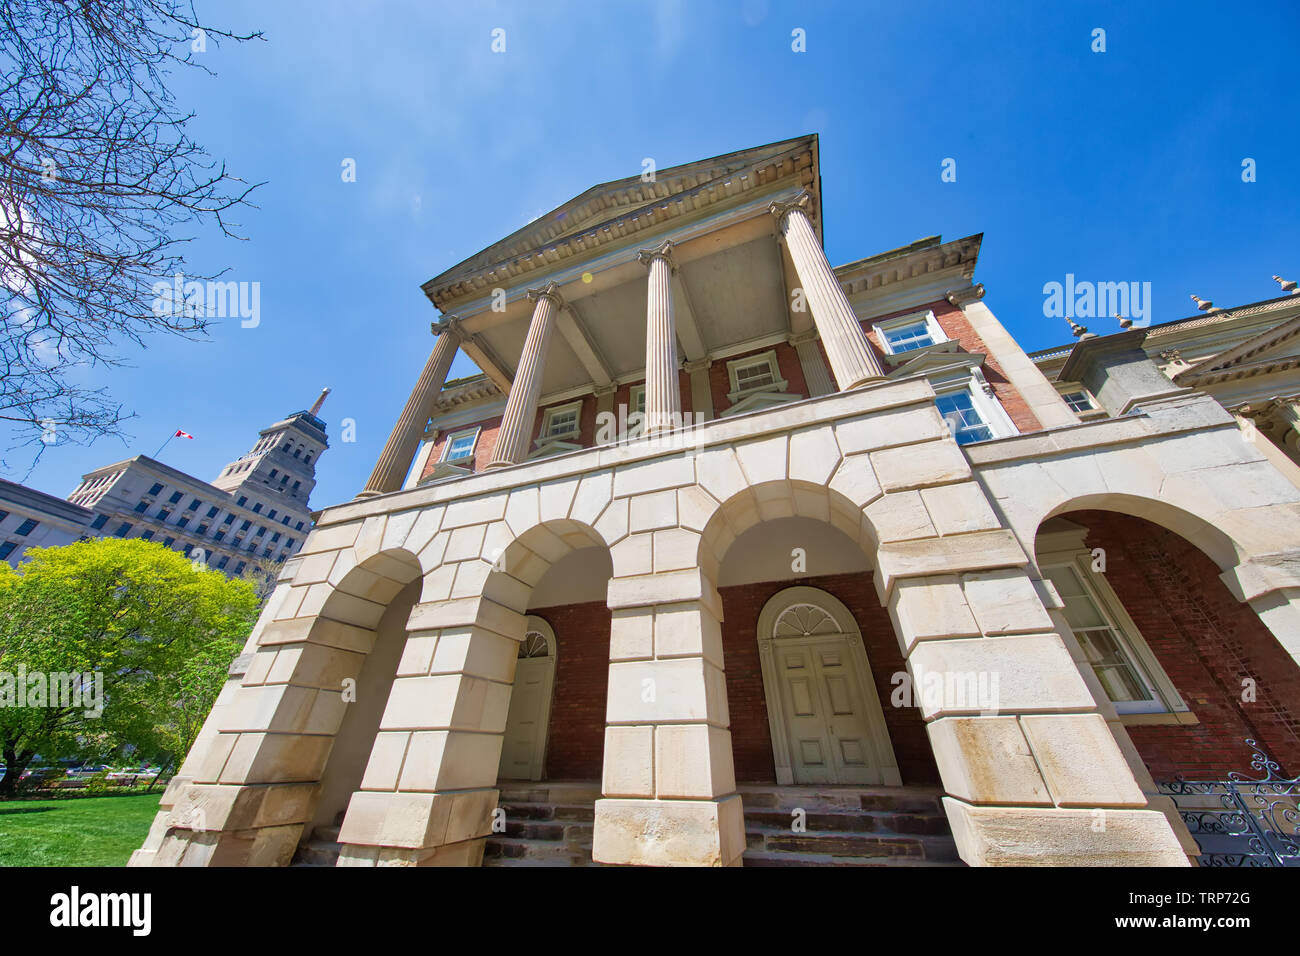 Osgoode Hall that houses the Ontario Court of Appeal, the Divisional Court of the Superior Court of Justice, the offices of the Law Society of Ontario - Stock Image